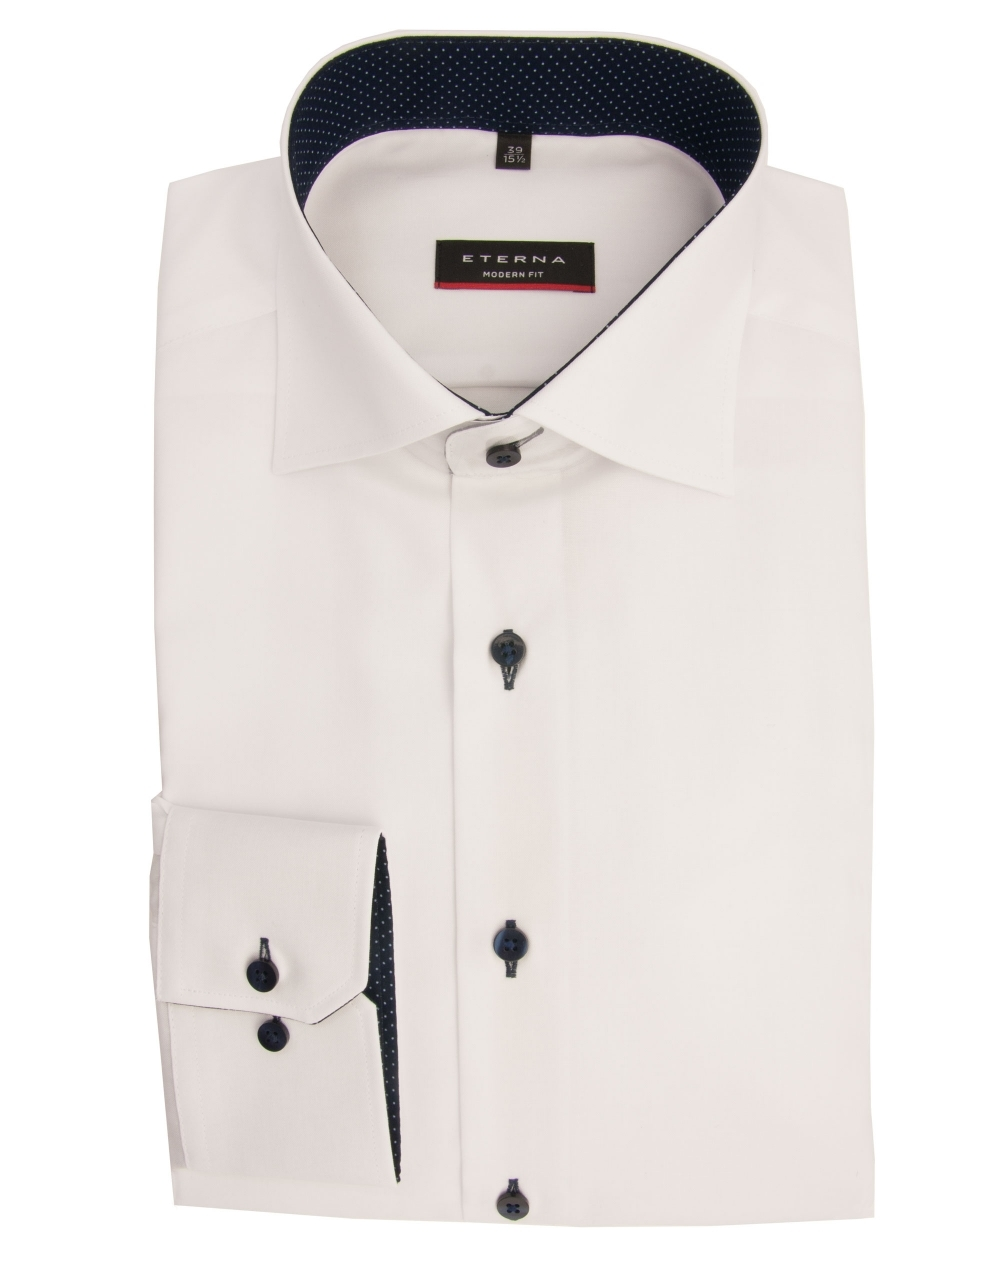 Eterna Oxford blue shirt